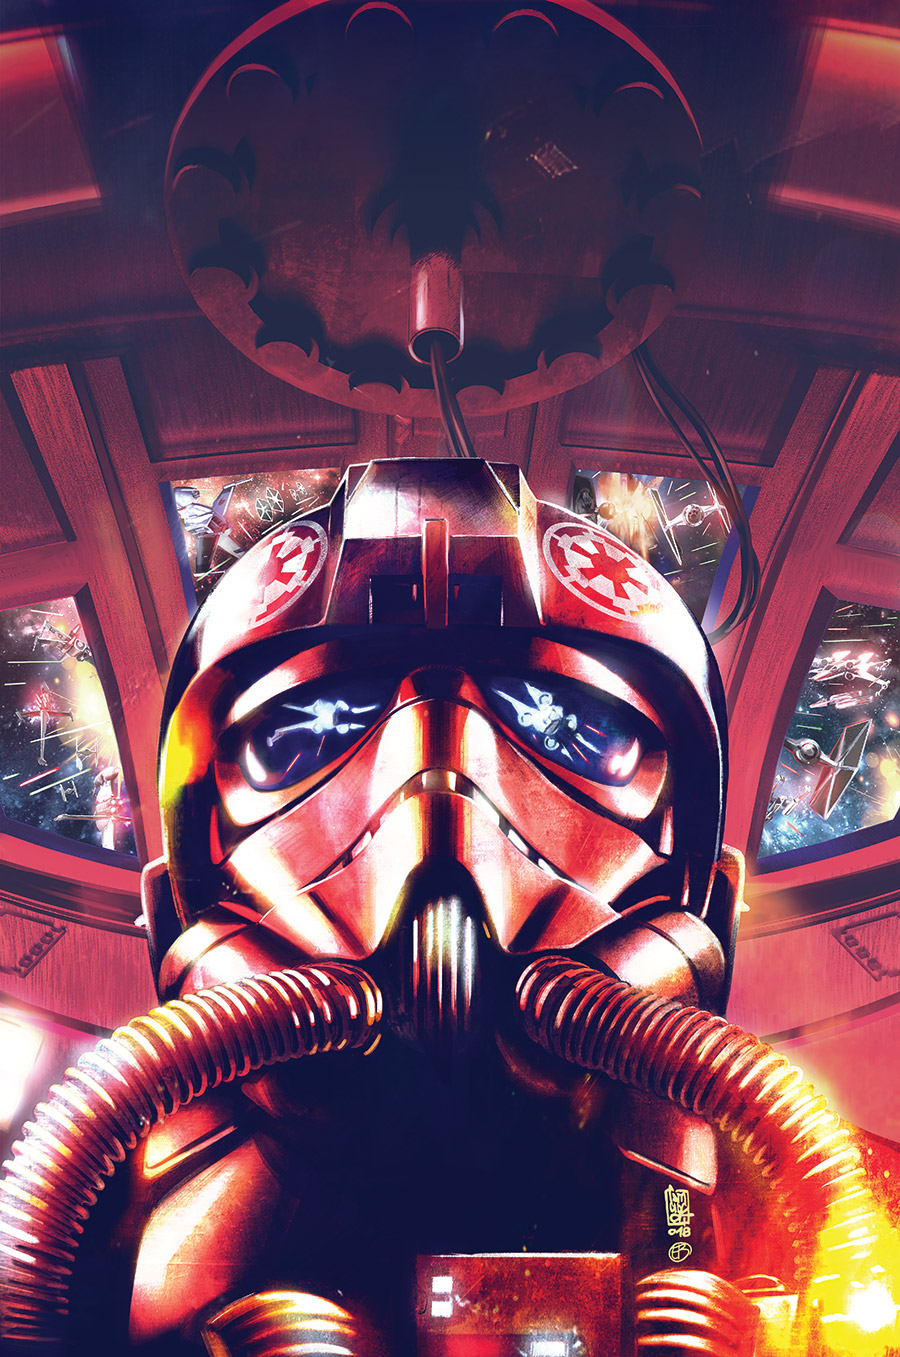 Cover art of Star Wars: TIE Fighter issue 1.